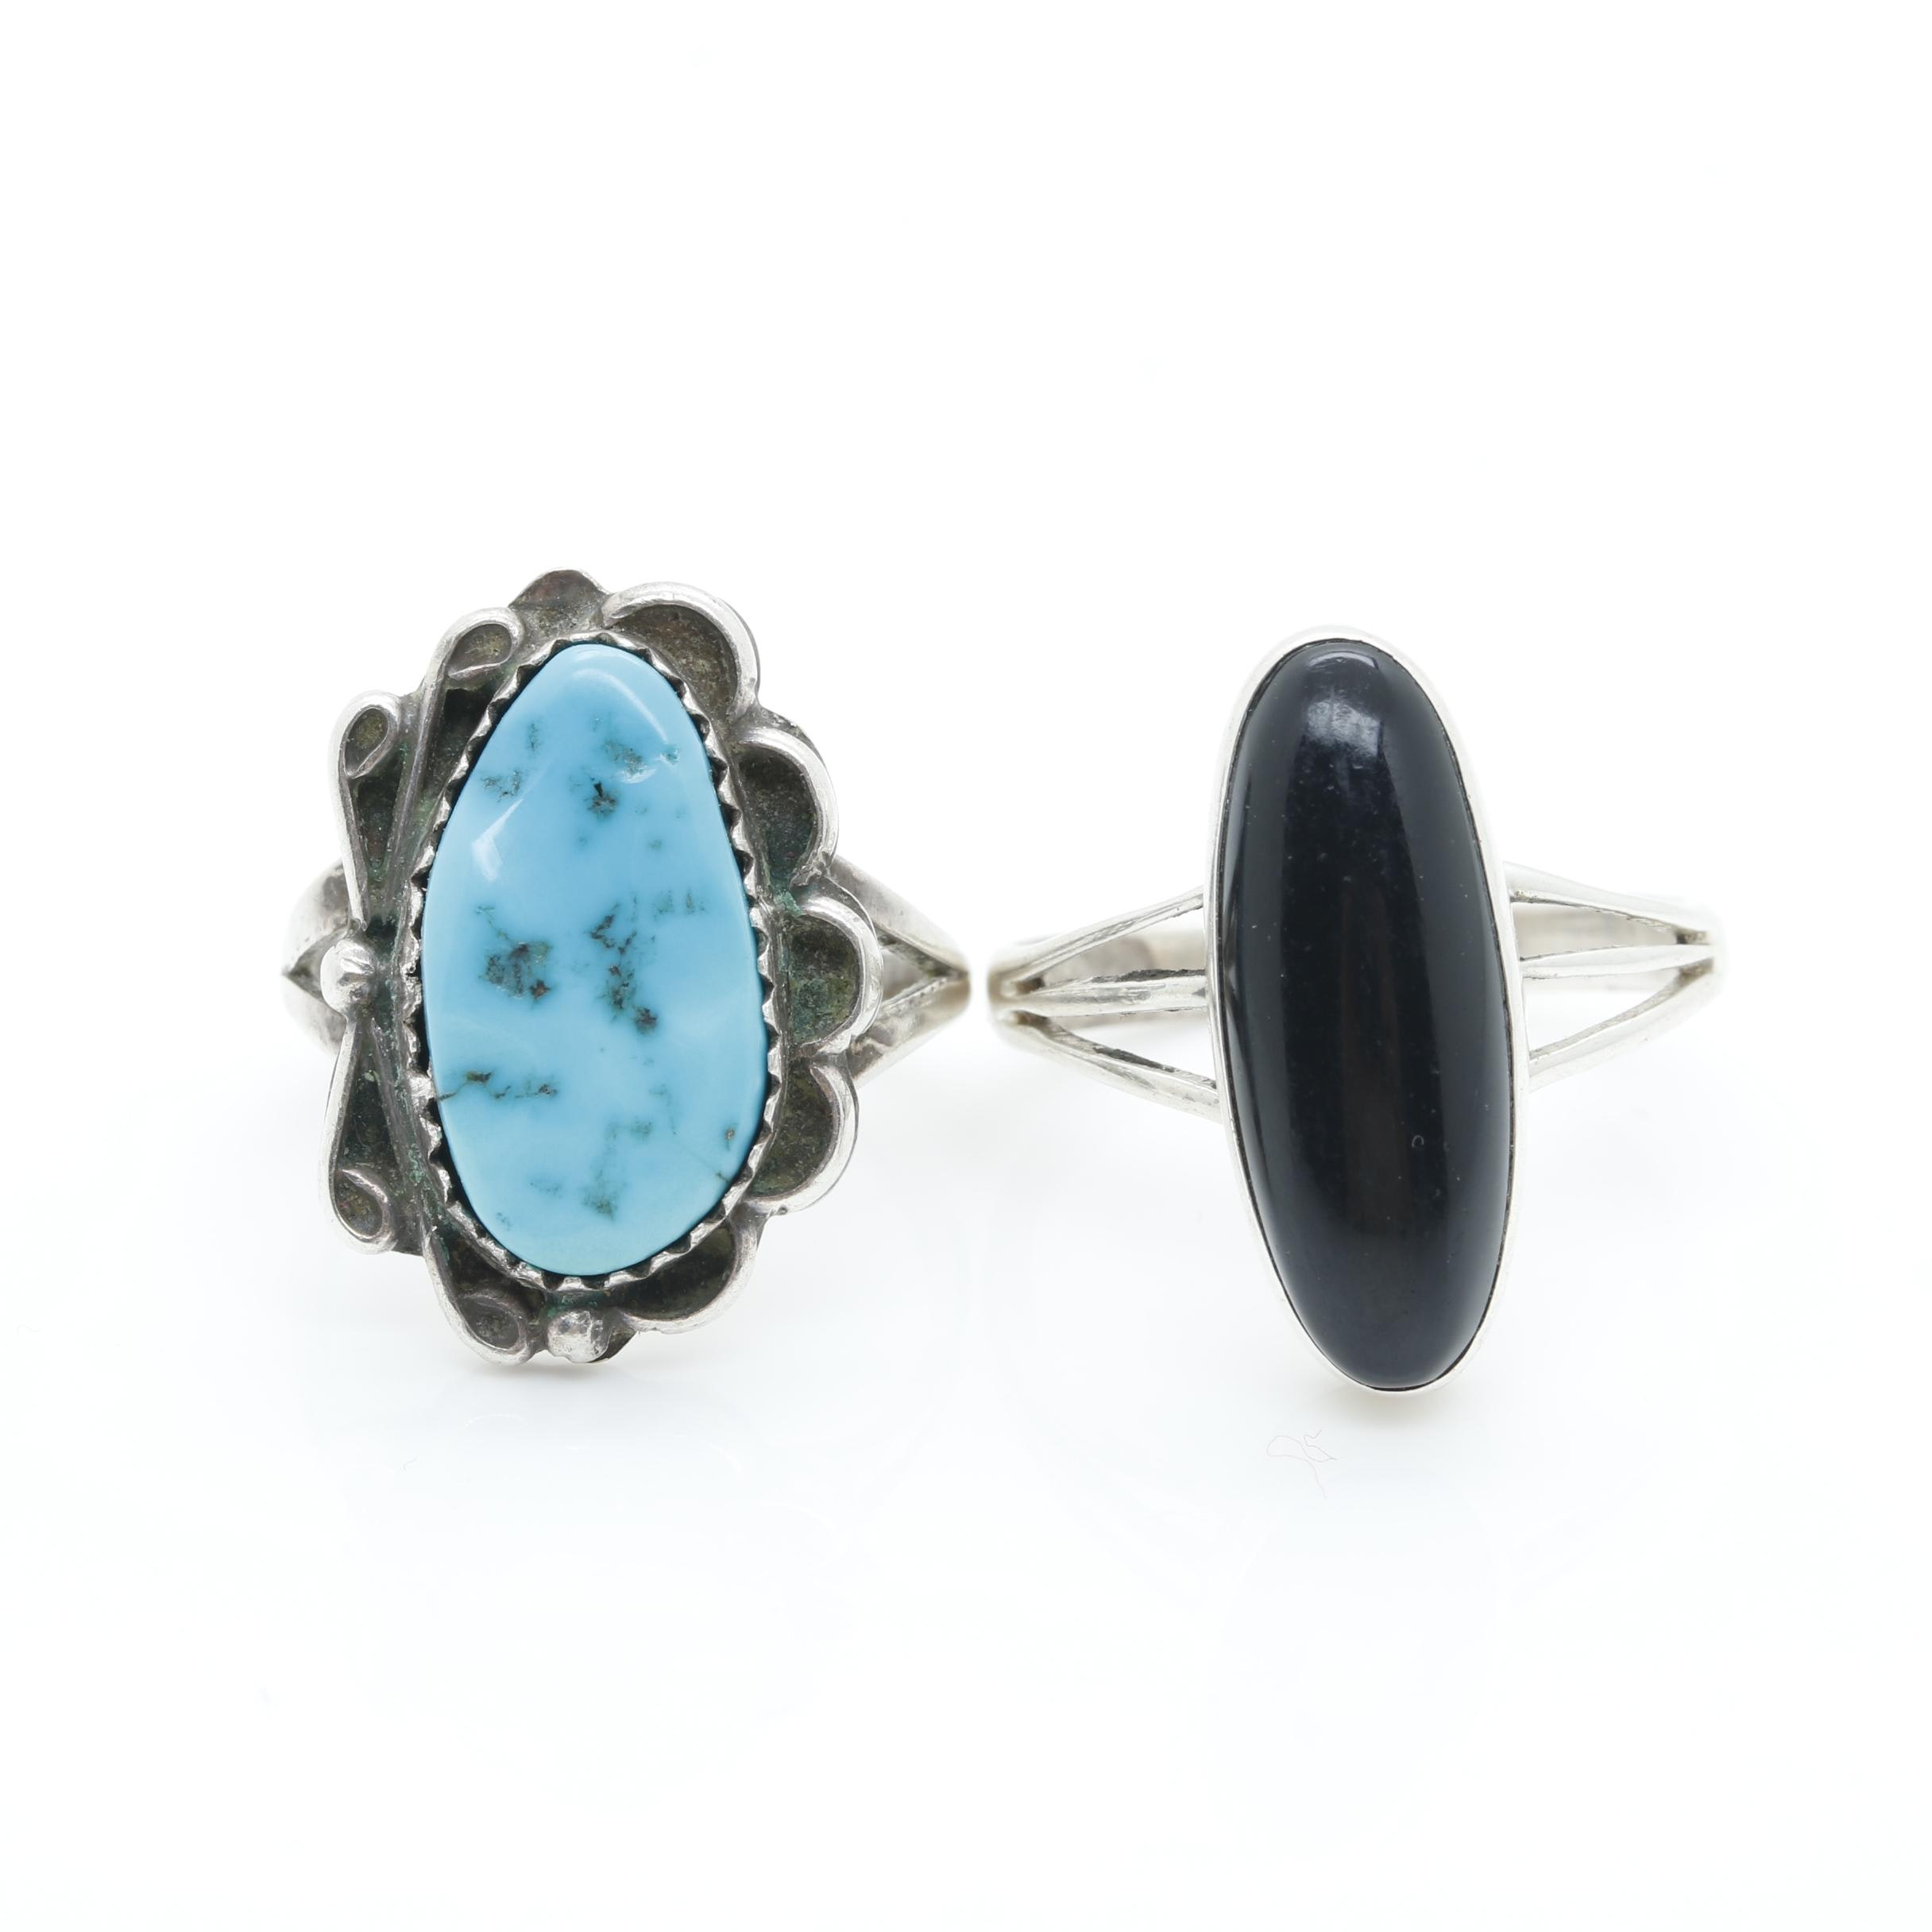 Southwestern Style Sterling Silver Turquoise and Black Onyx Rings